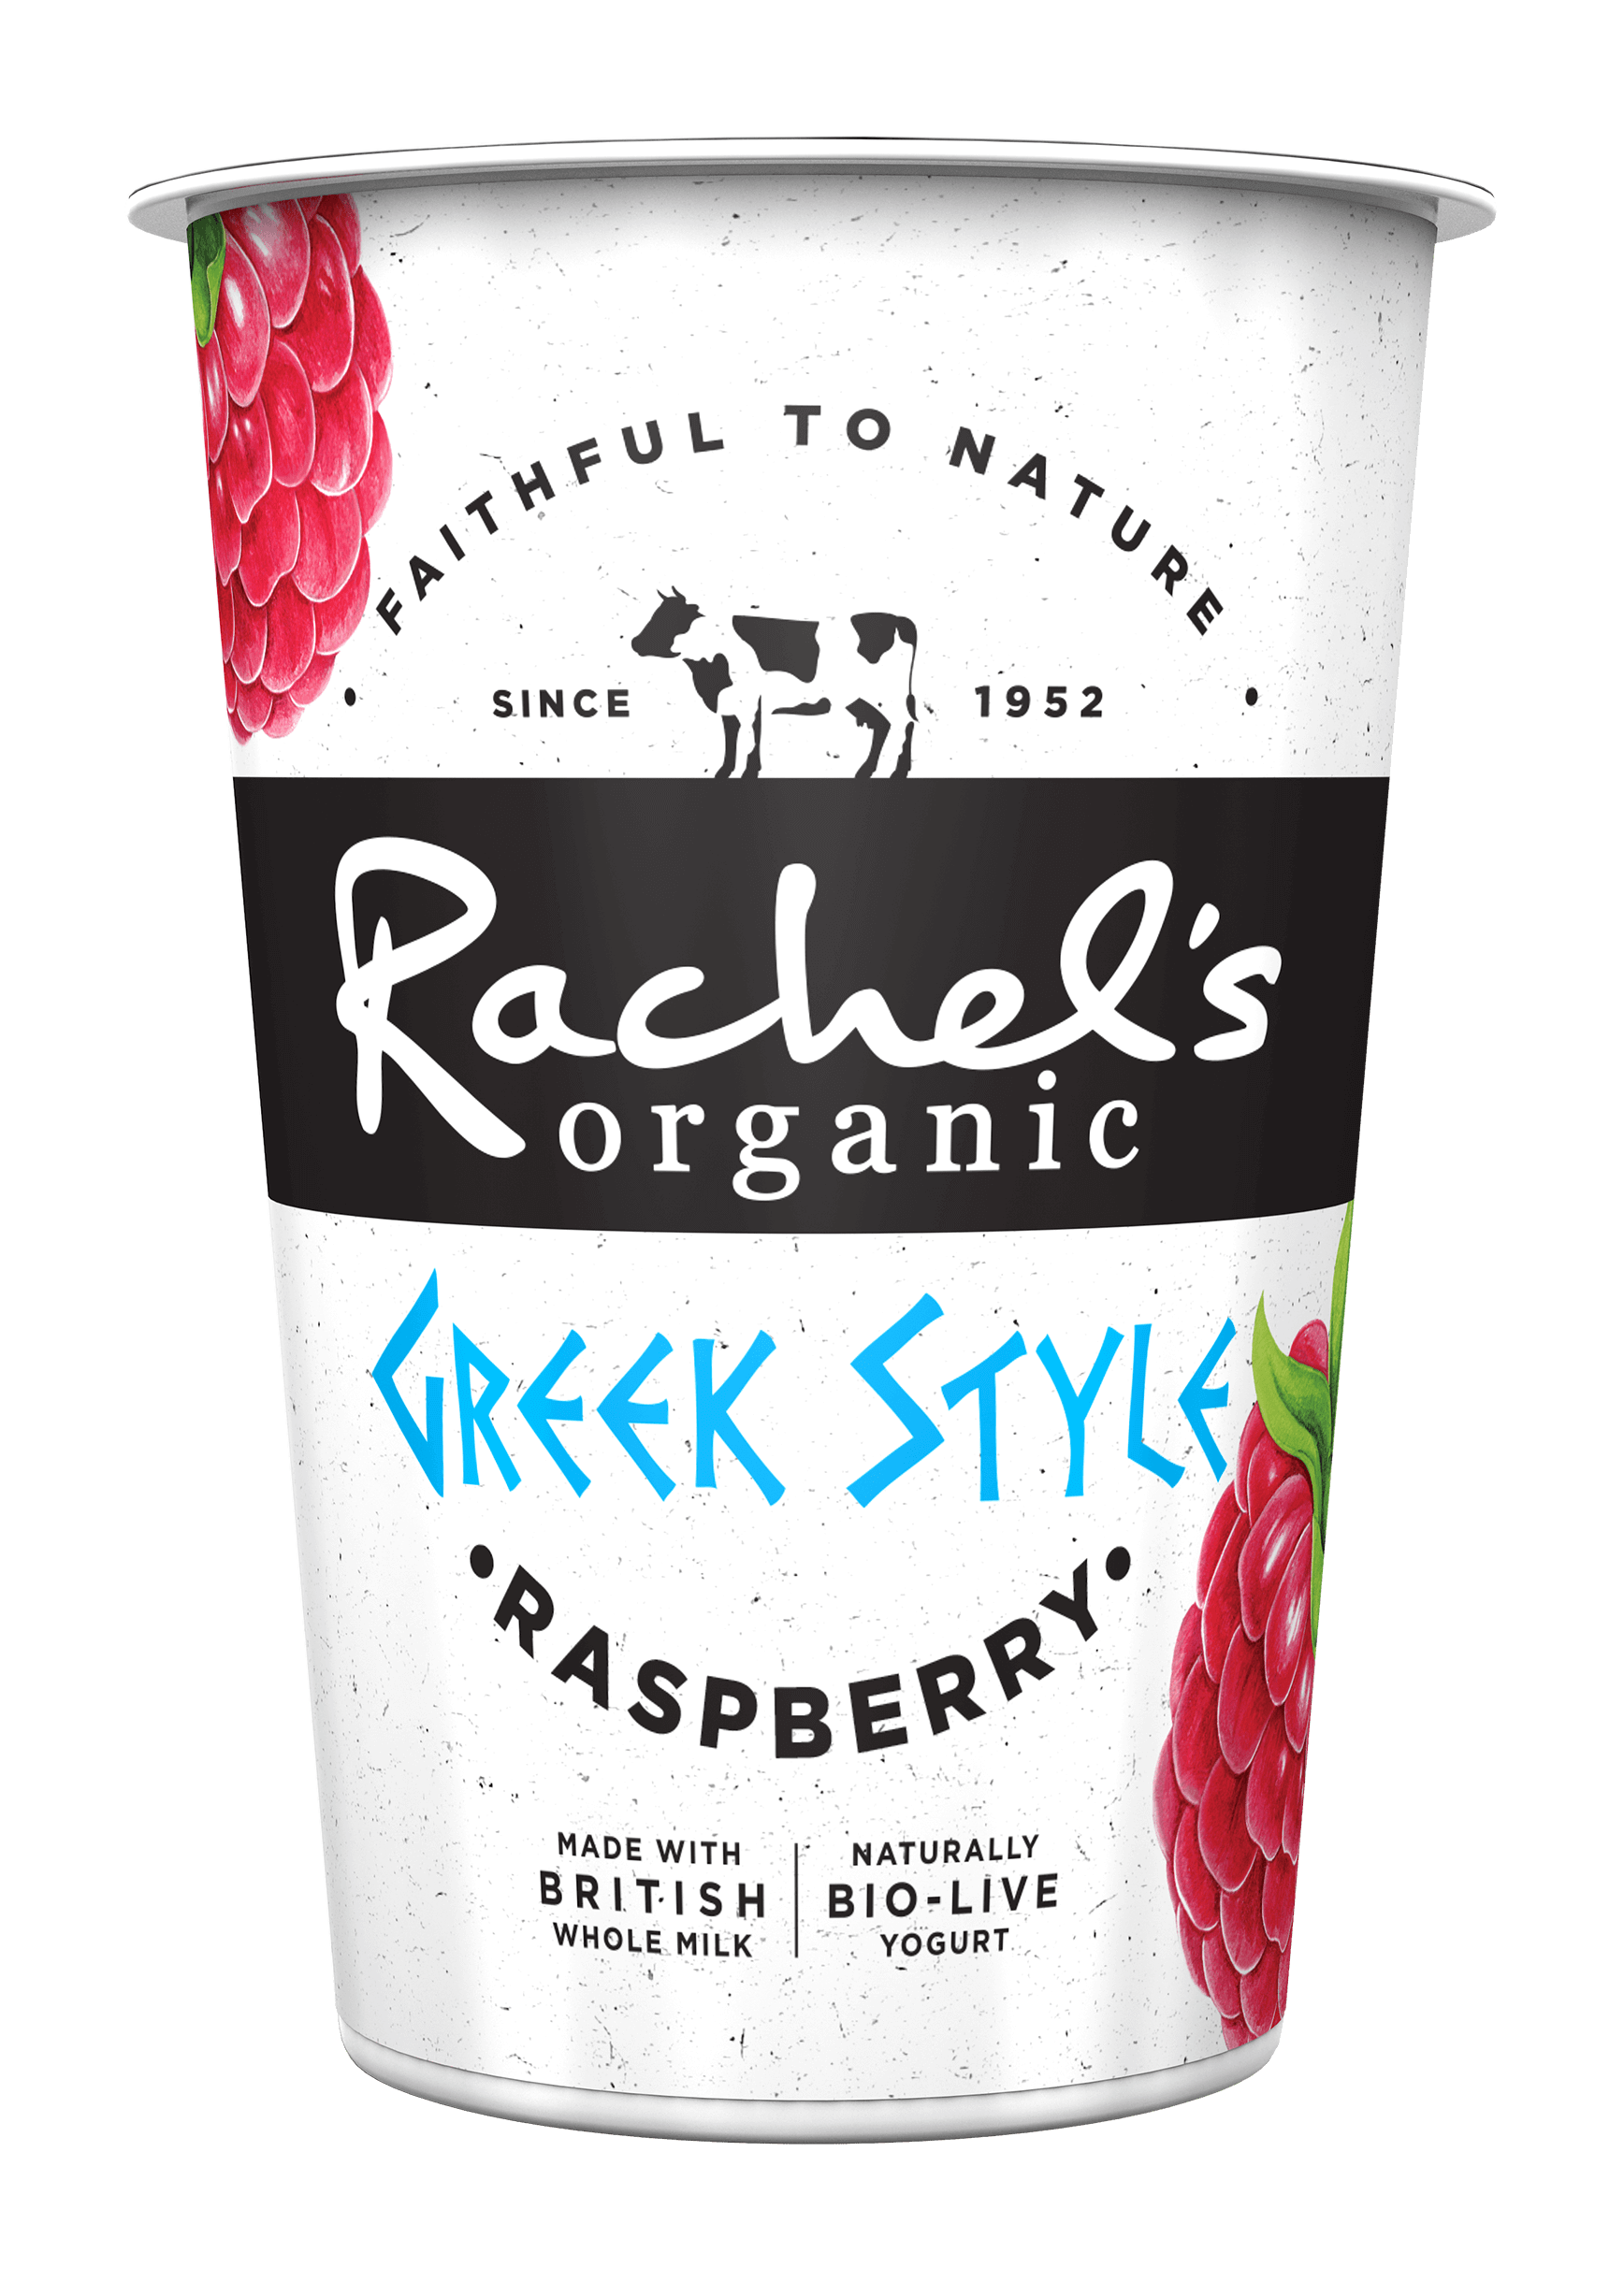 https://www.rachelsorganic.co.uk/wp-content/uploads/2019/12/5021638001035-3D-RACHELS-450G-POT-GREEK-STYLE-RASPBERRY.png